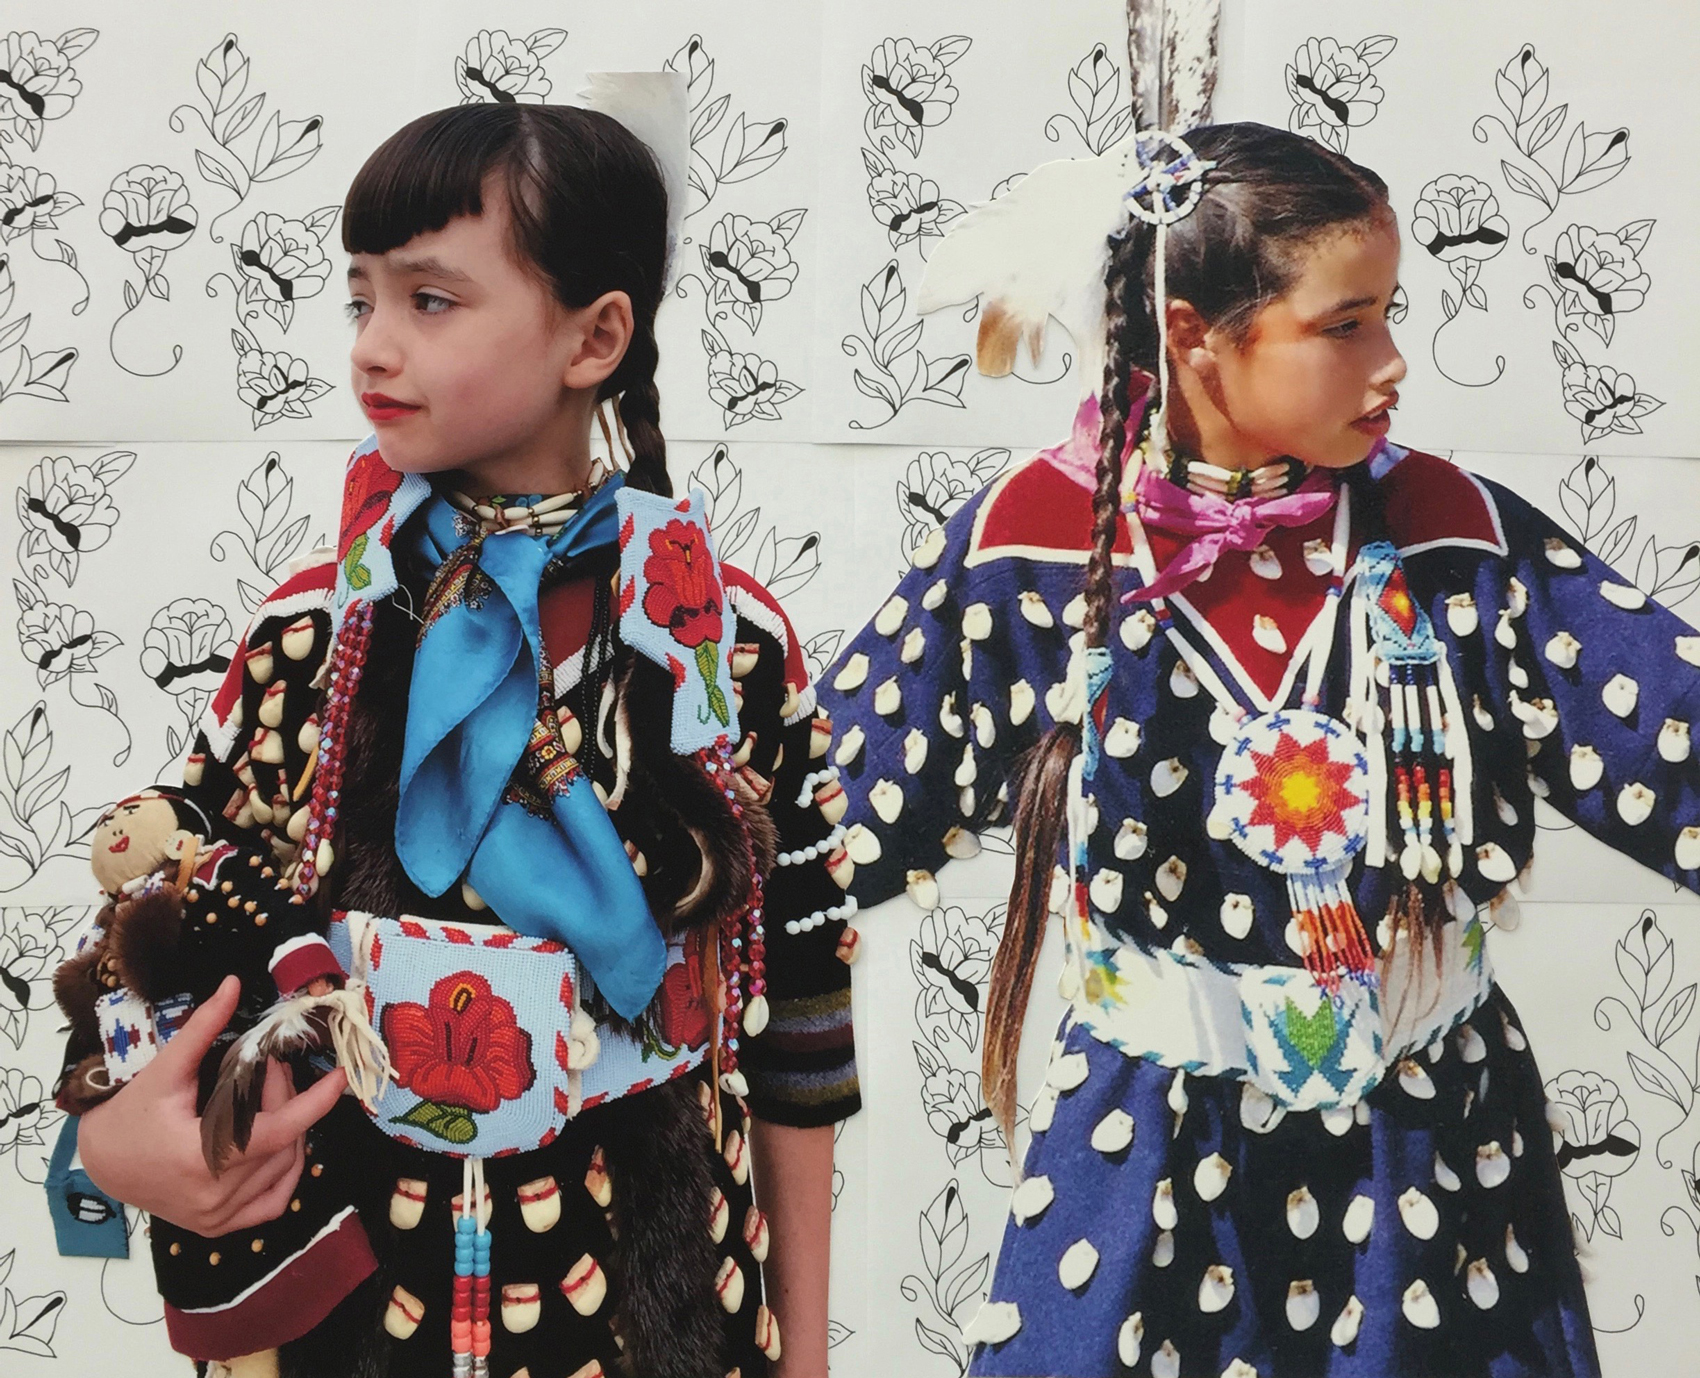 Wendy Red Star,  Crow Roses , 2016, Beatrice Red Star Fletcher age 8 (2015) and Wendy Red Star age 8 (1990) at Crow Fair, lithograph.